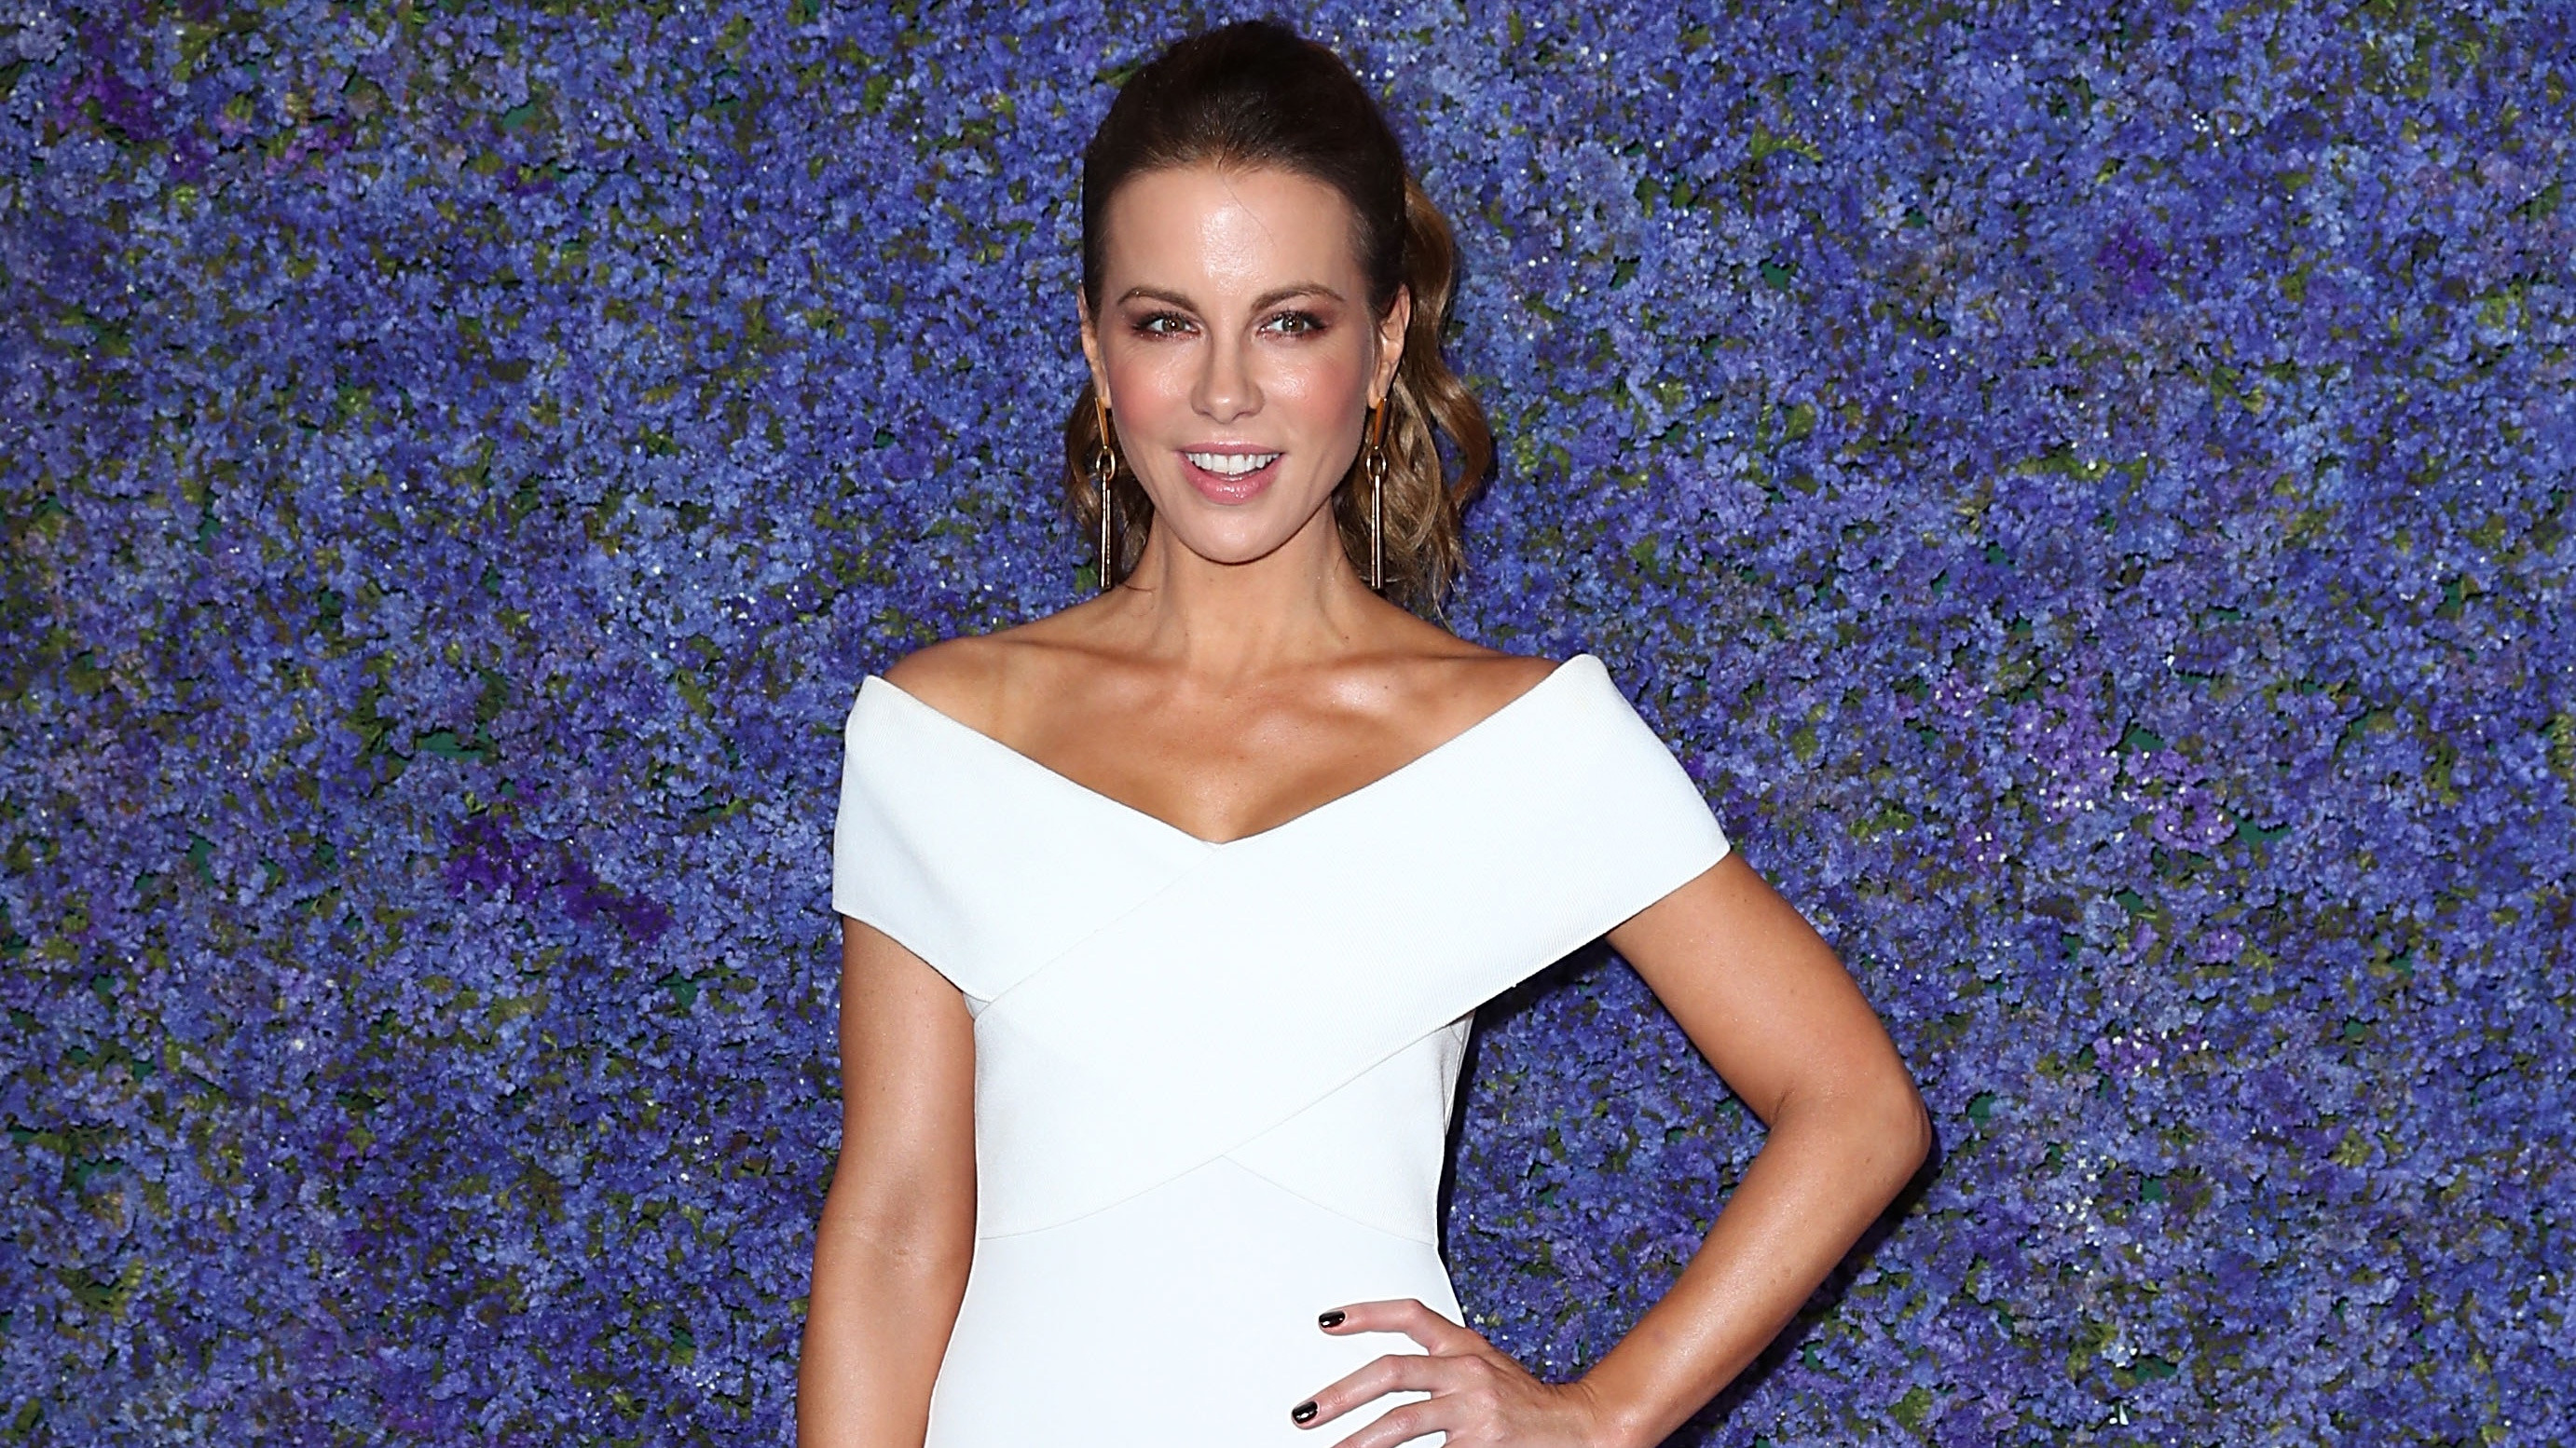 Kate Beckinsale Just Deleted Every Single Photo on Her Instagram Account